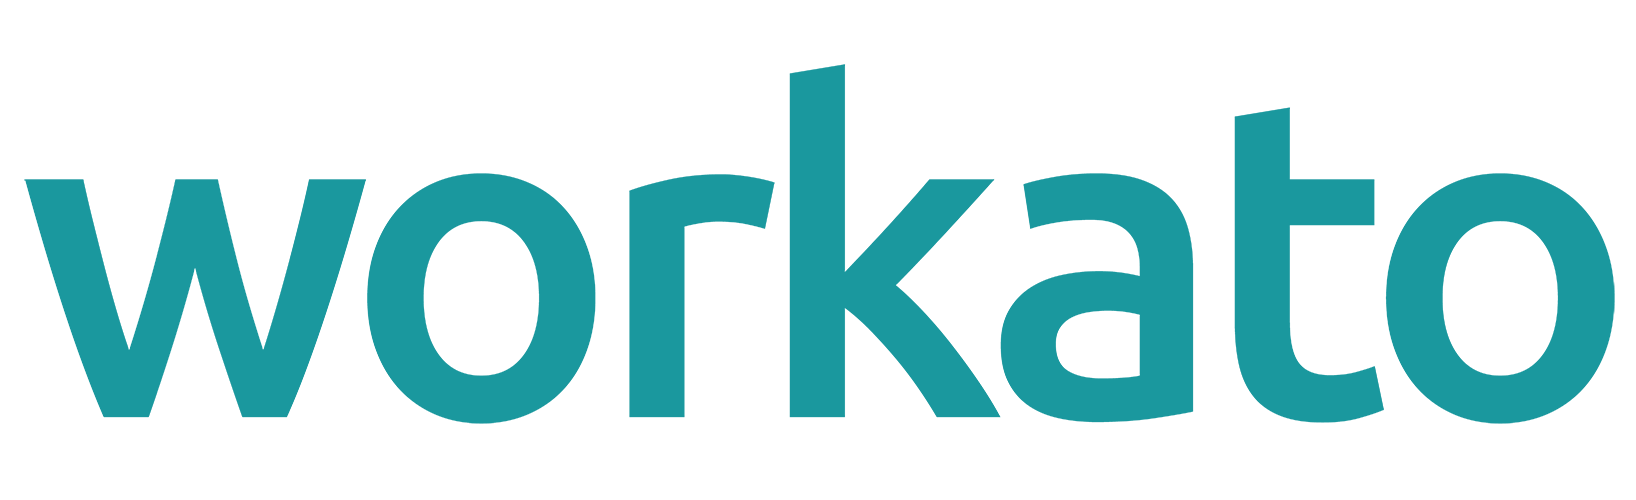 workato-logo-small.png